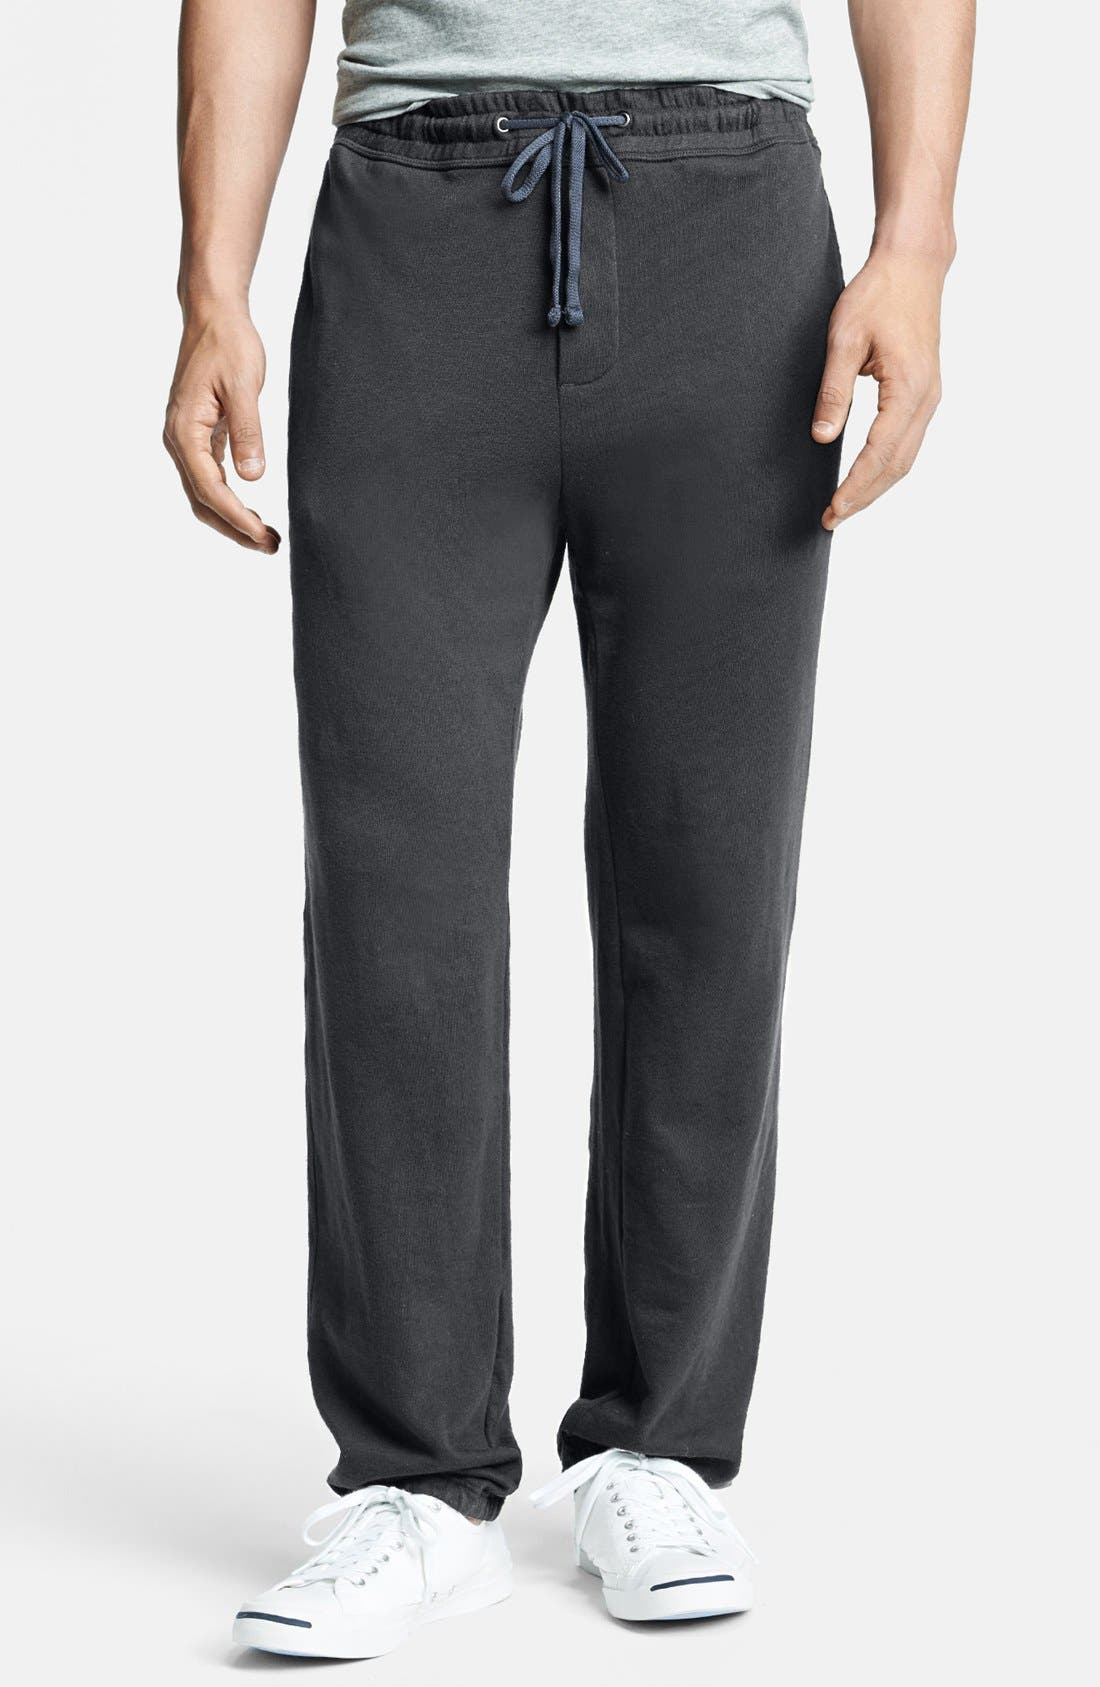 Alternate Image 1 Selected - James Perse 'Classic' Sweatpants